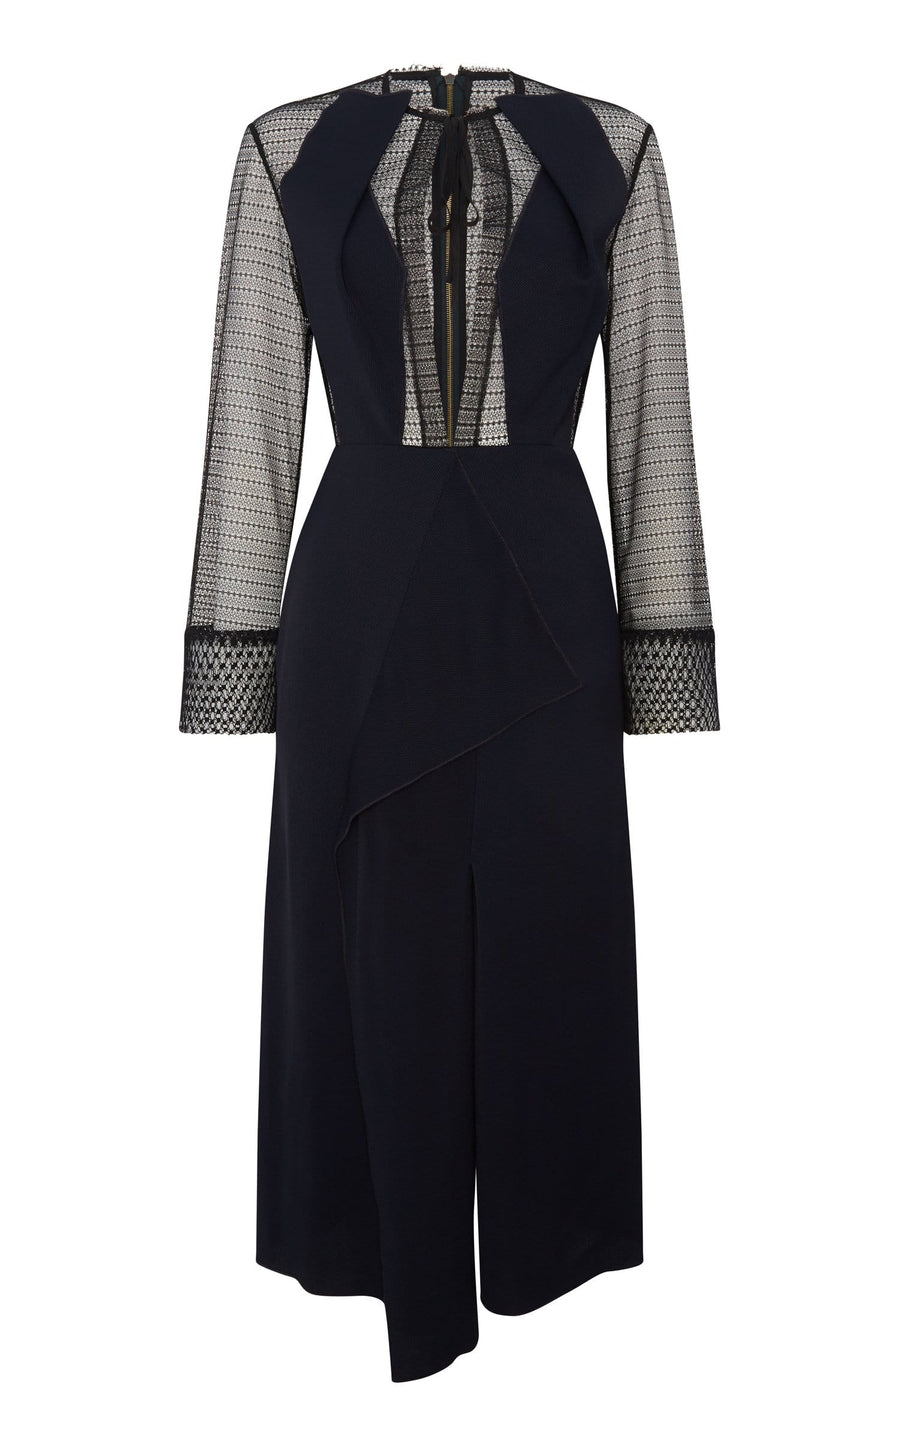 Devens Dress In Navy/Black from Roland Mouret